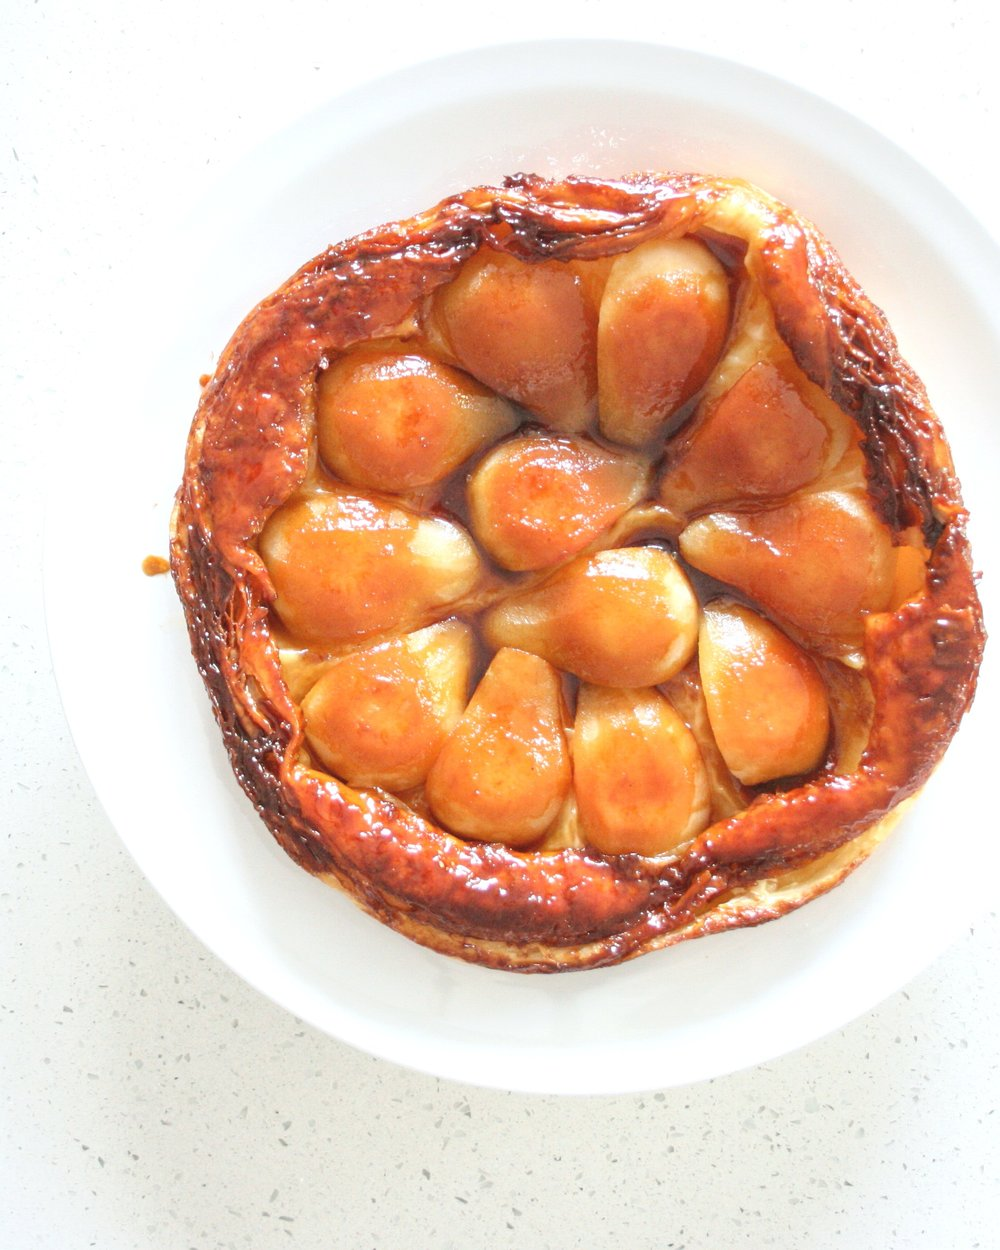 Apple tarte tatin, cooked in the steam oven and present whole on a white plate